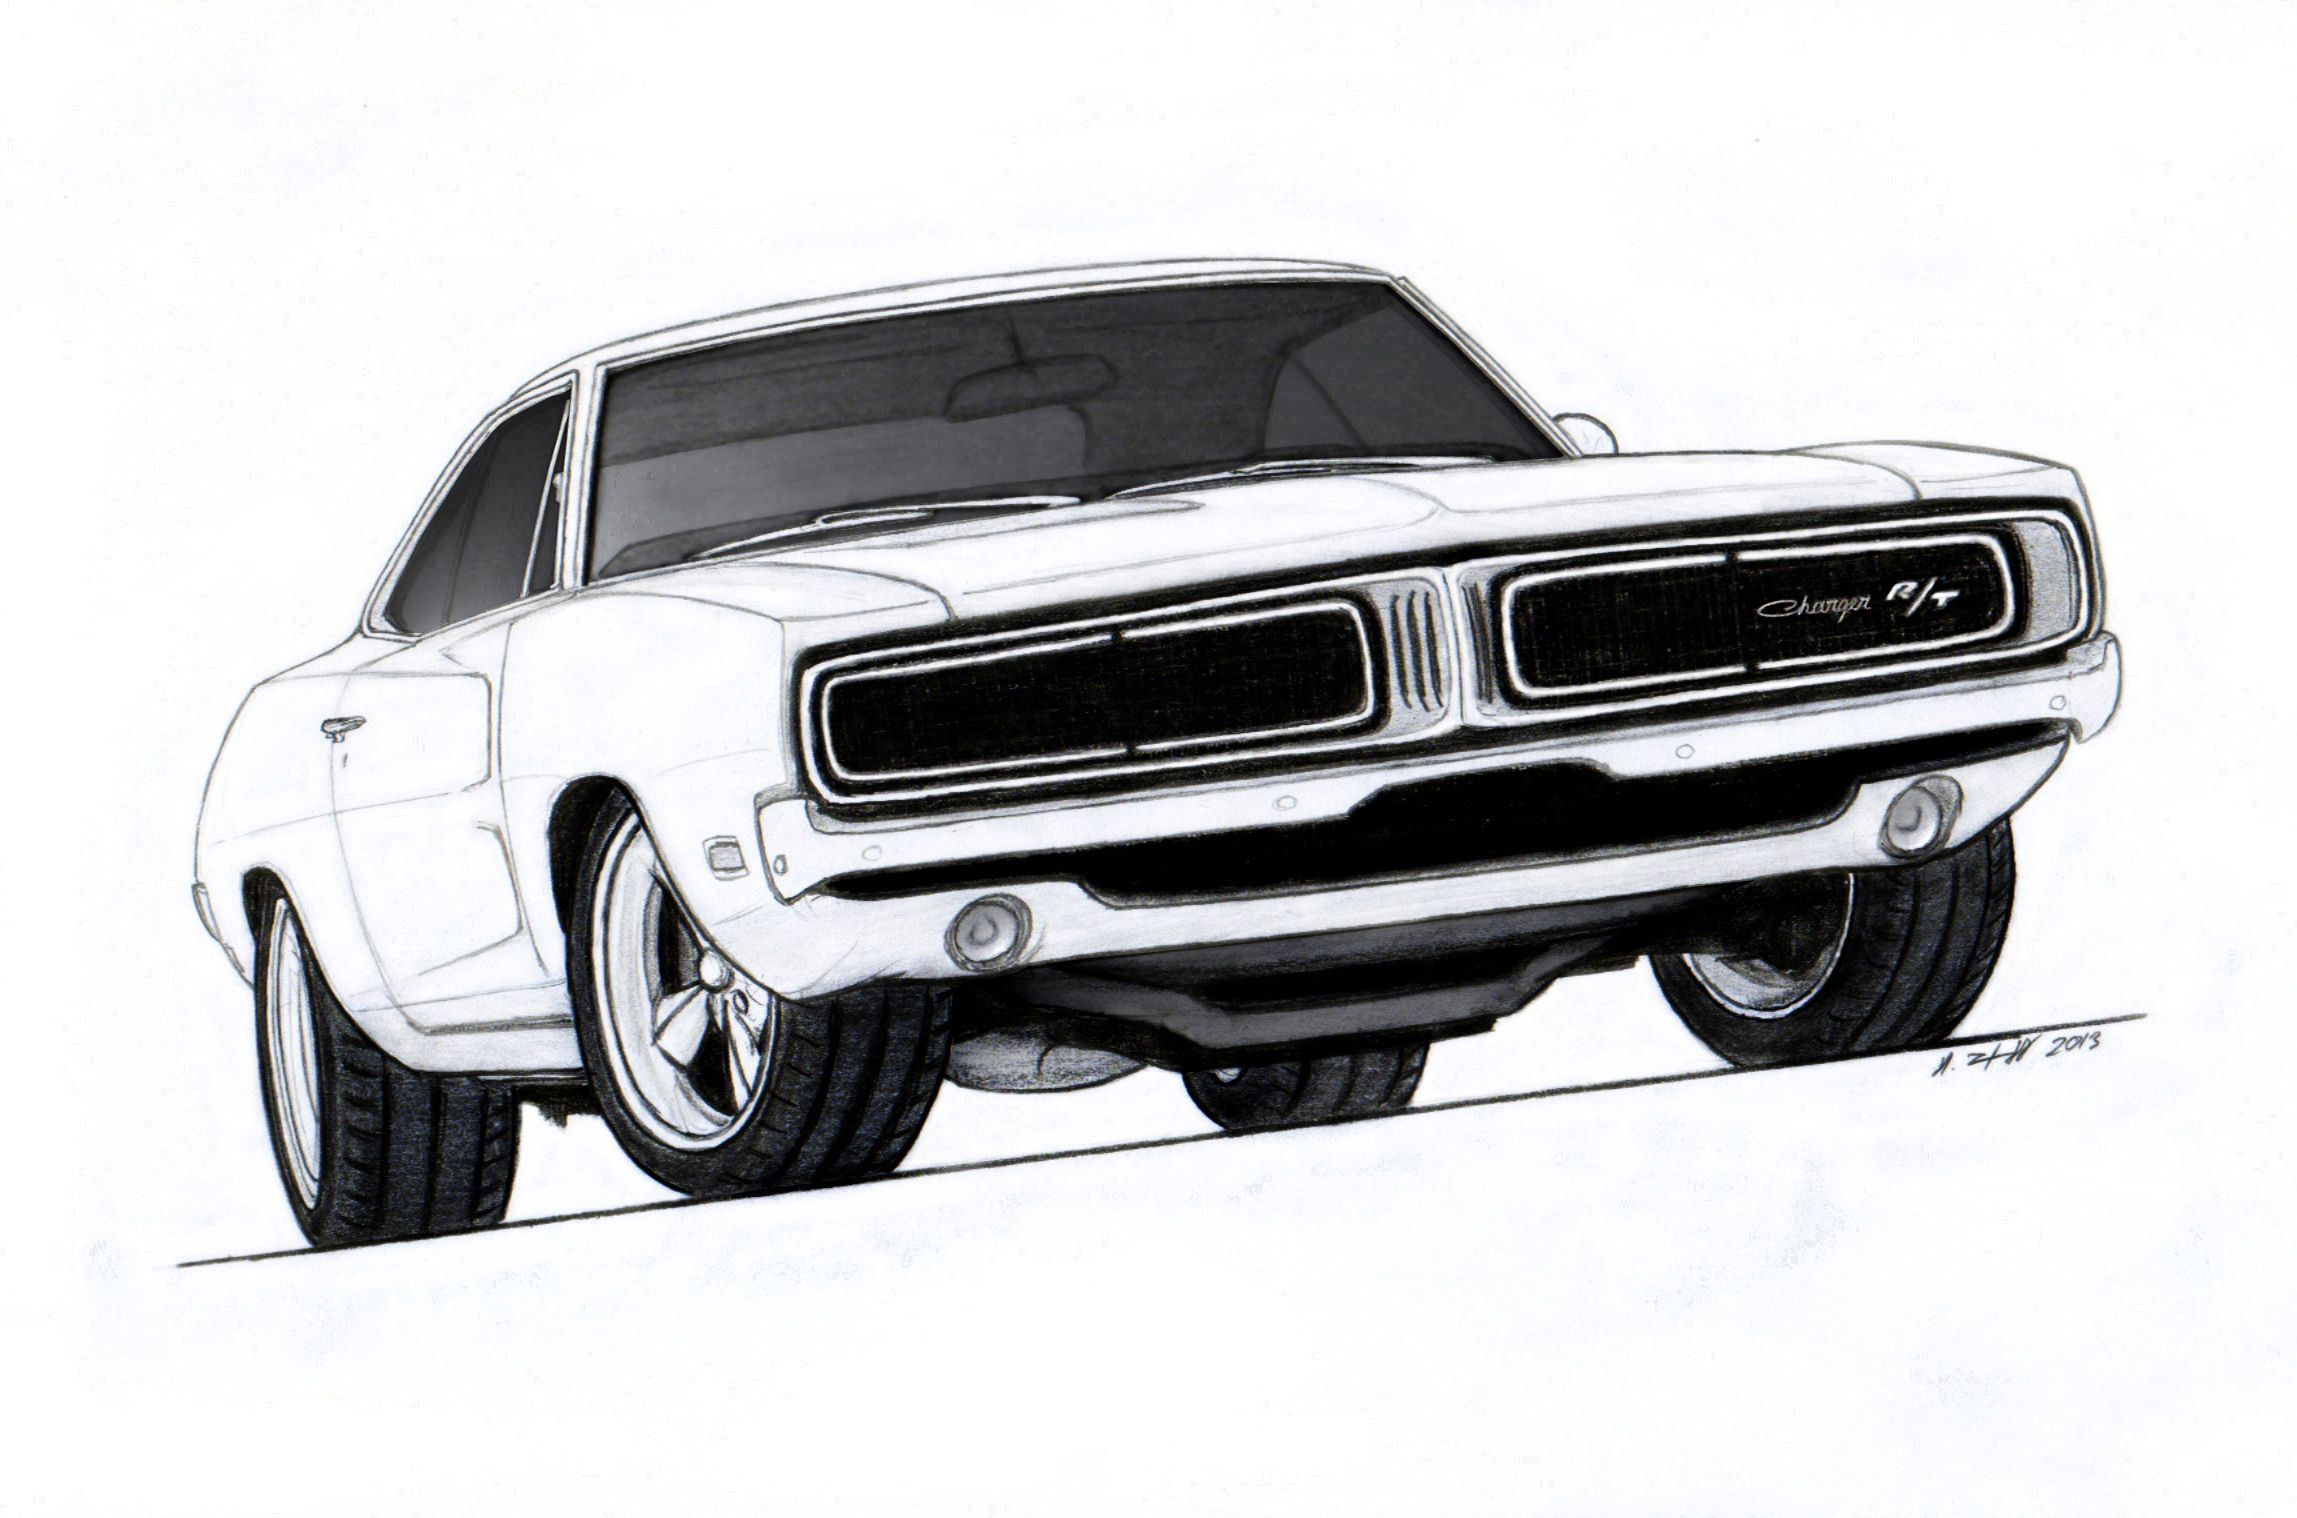 1969 Dodge Charger R/T Pro Touring Drawing by Vertualissimo.